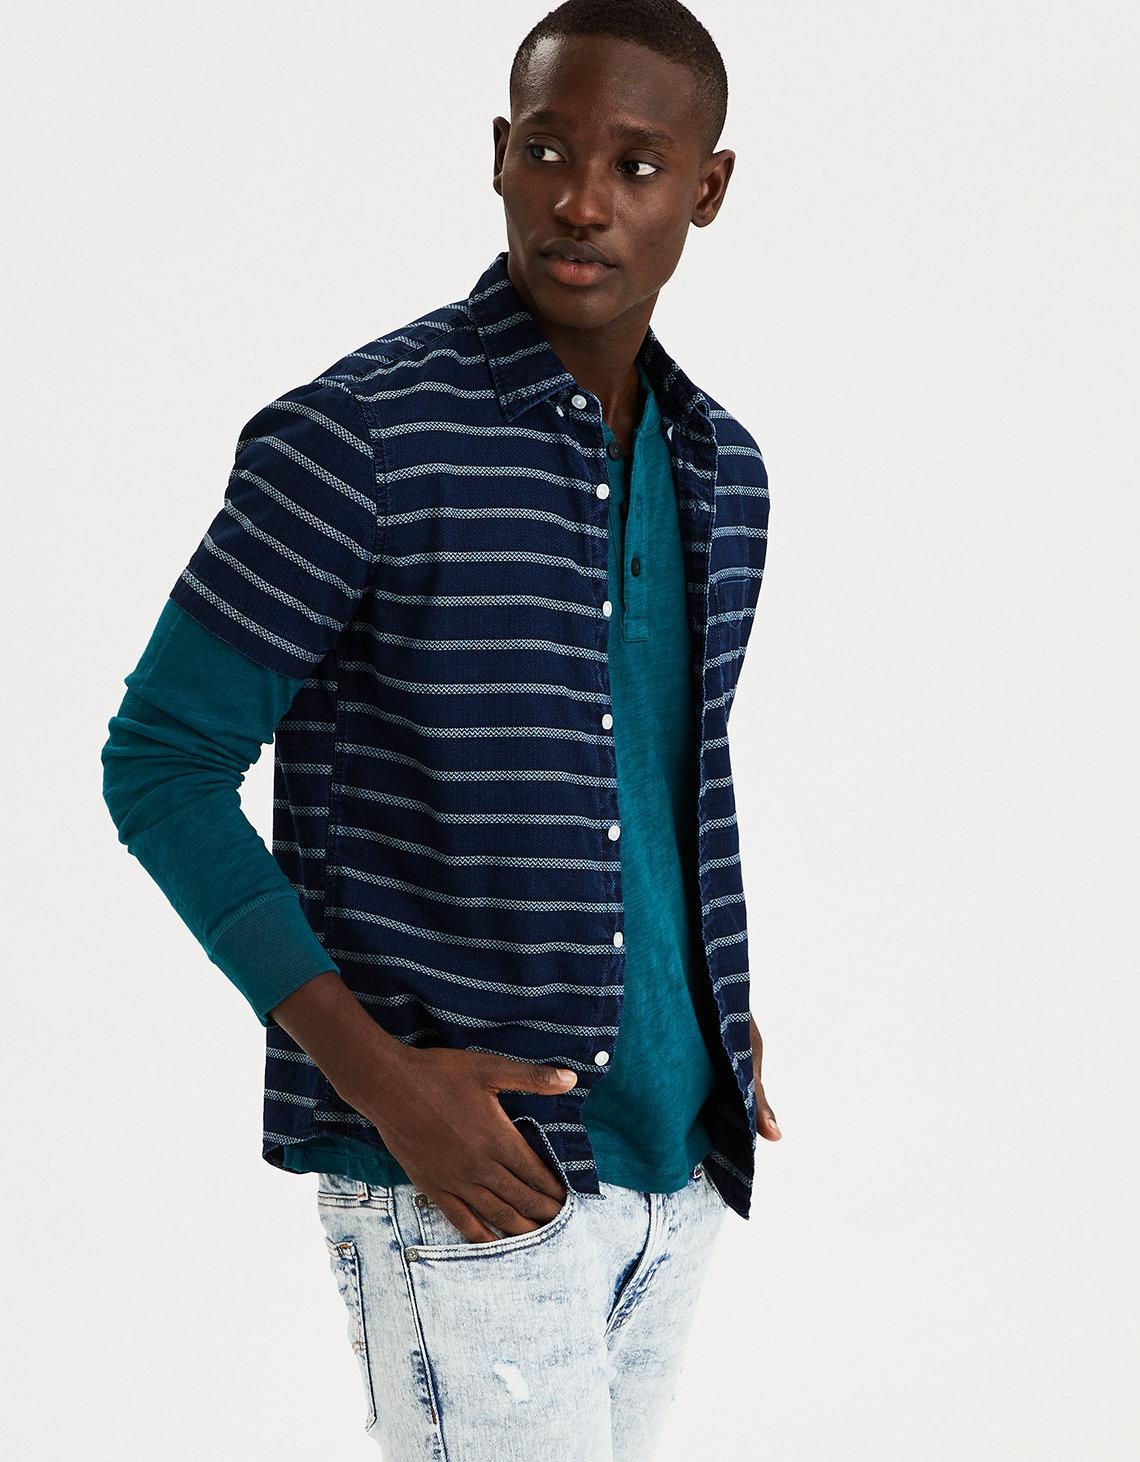 ccfb29ab47a Lyst - American Eagle Ae Chambray Button Down Shirt in Blue for Men